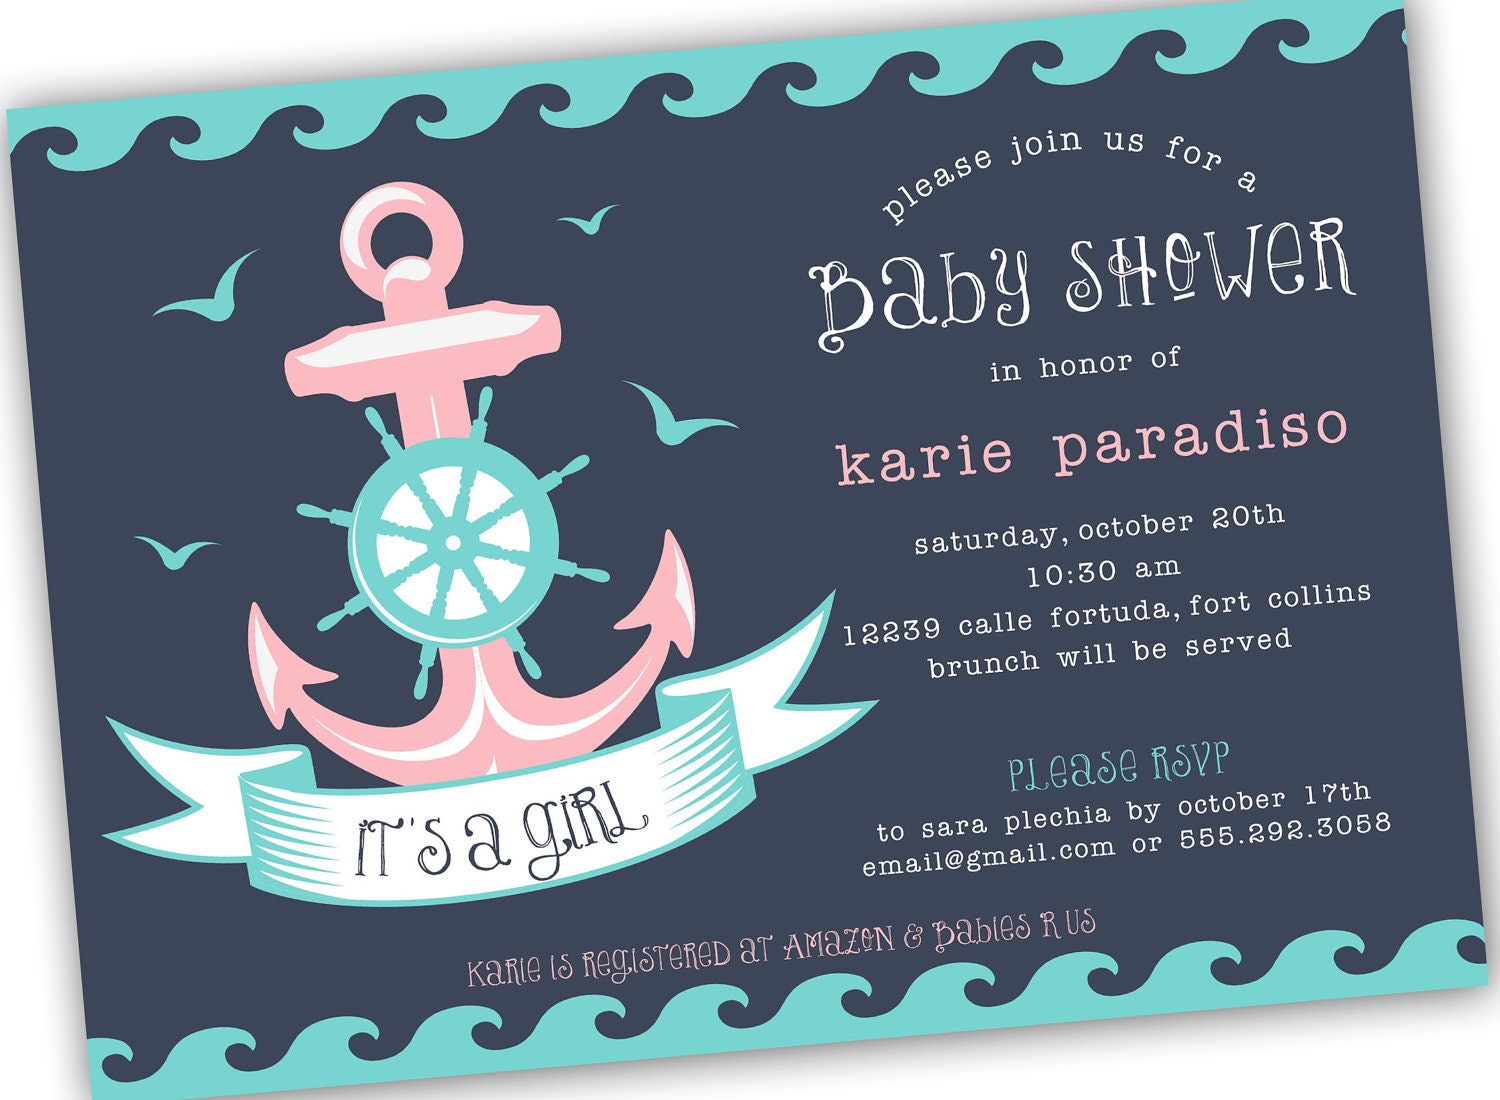 Sailor Baby Shower Invitations for amazing invitation sample